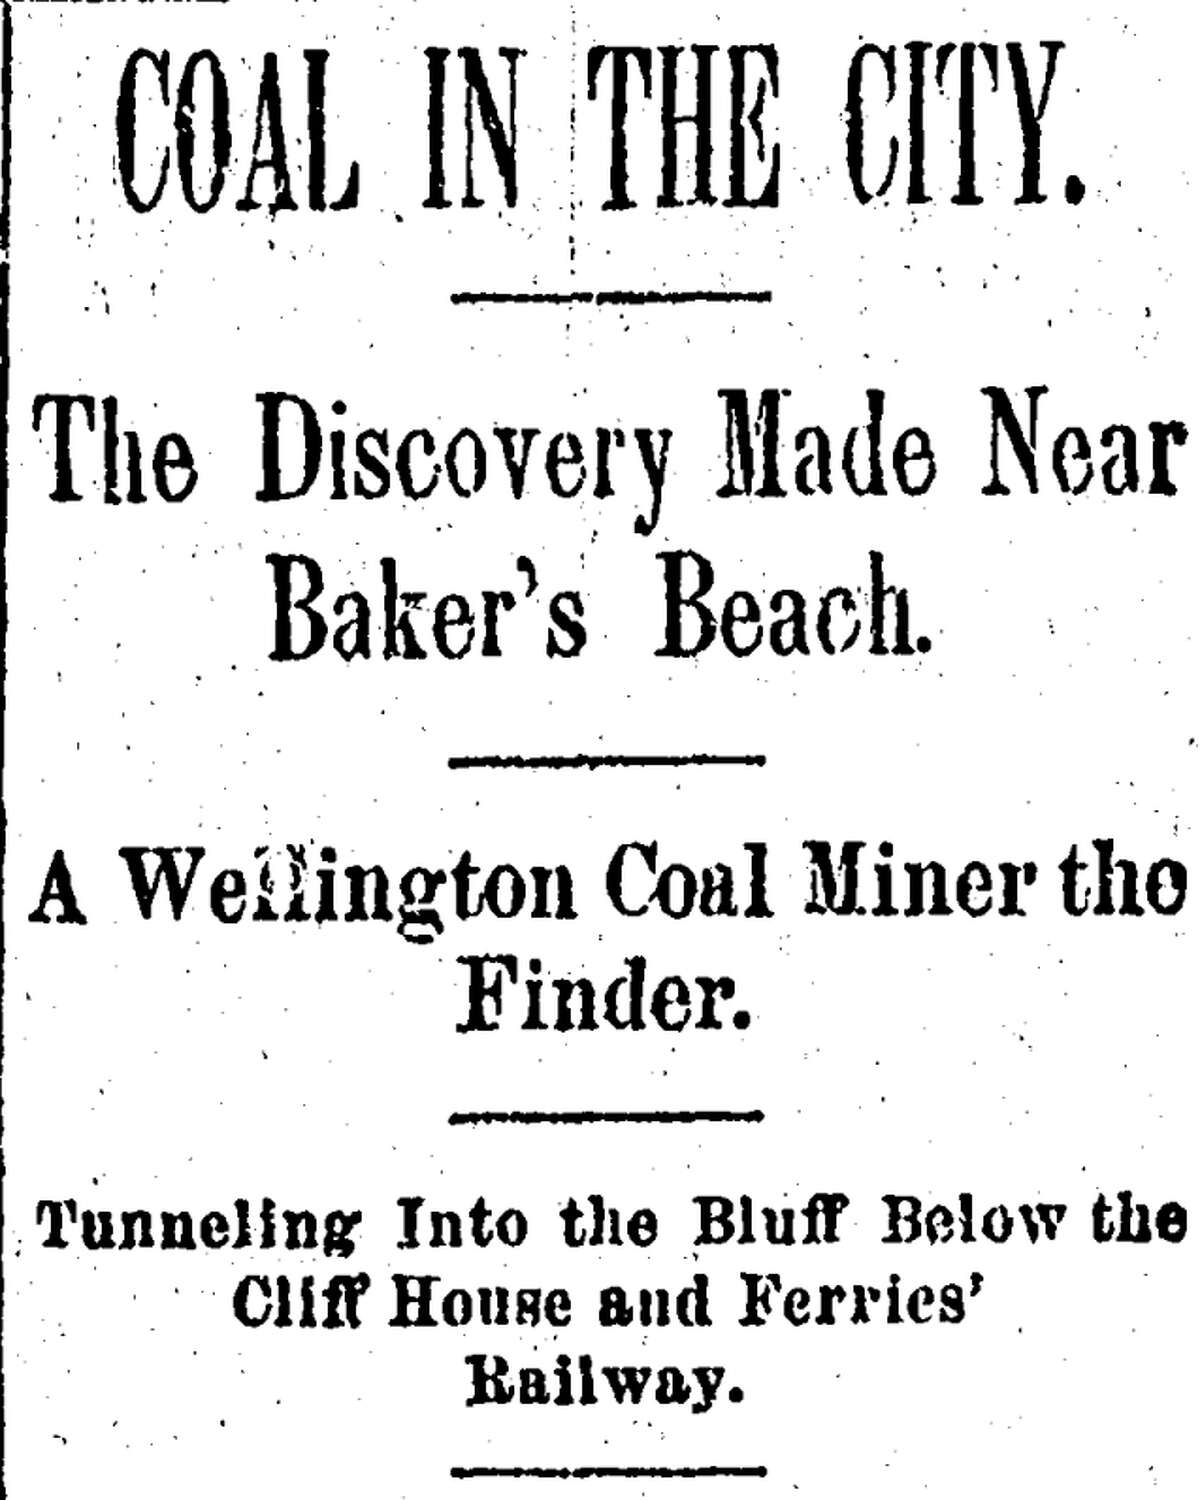 A March 28, 1891, San Francisco Chronicle article alerted readers to a coal discovery at Land's End near Baker's Beach.